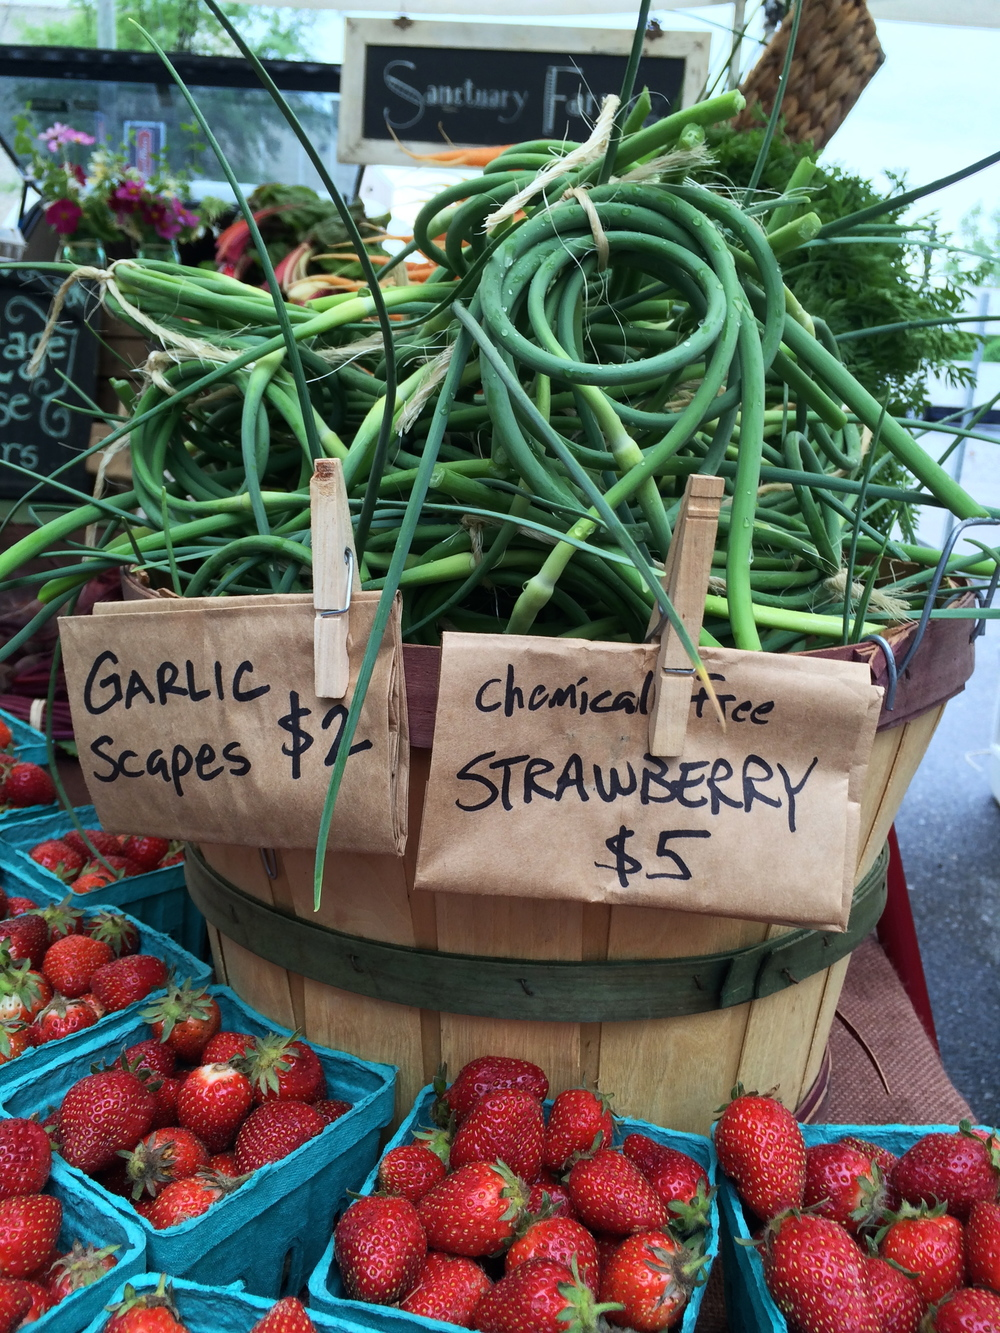 Sanctuary Farms garlic scapes and strawberries May 17.jpg